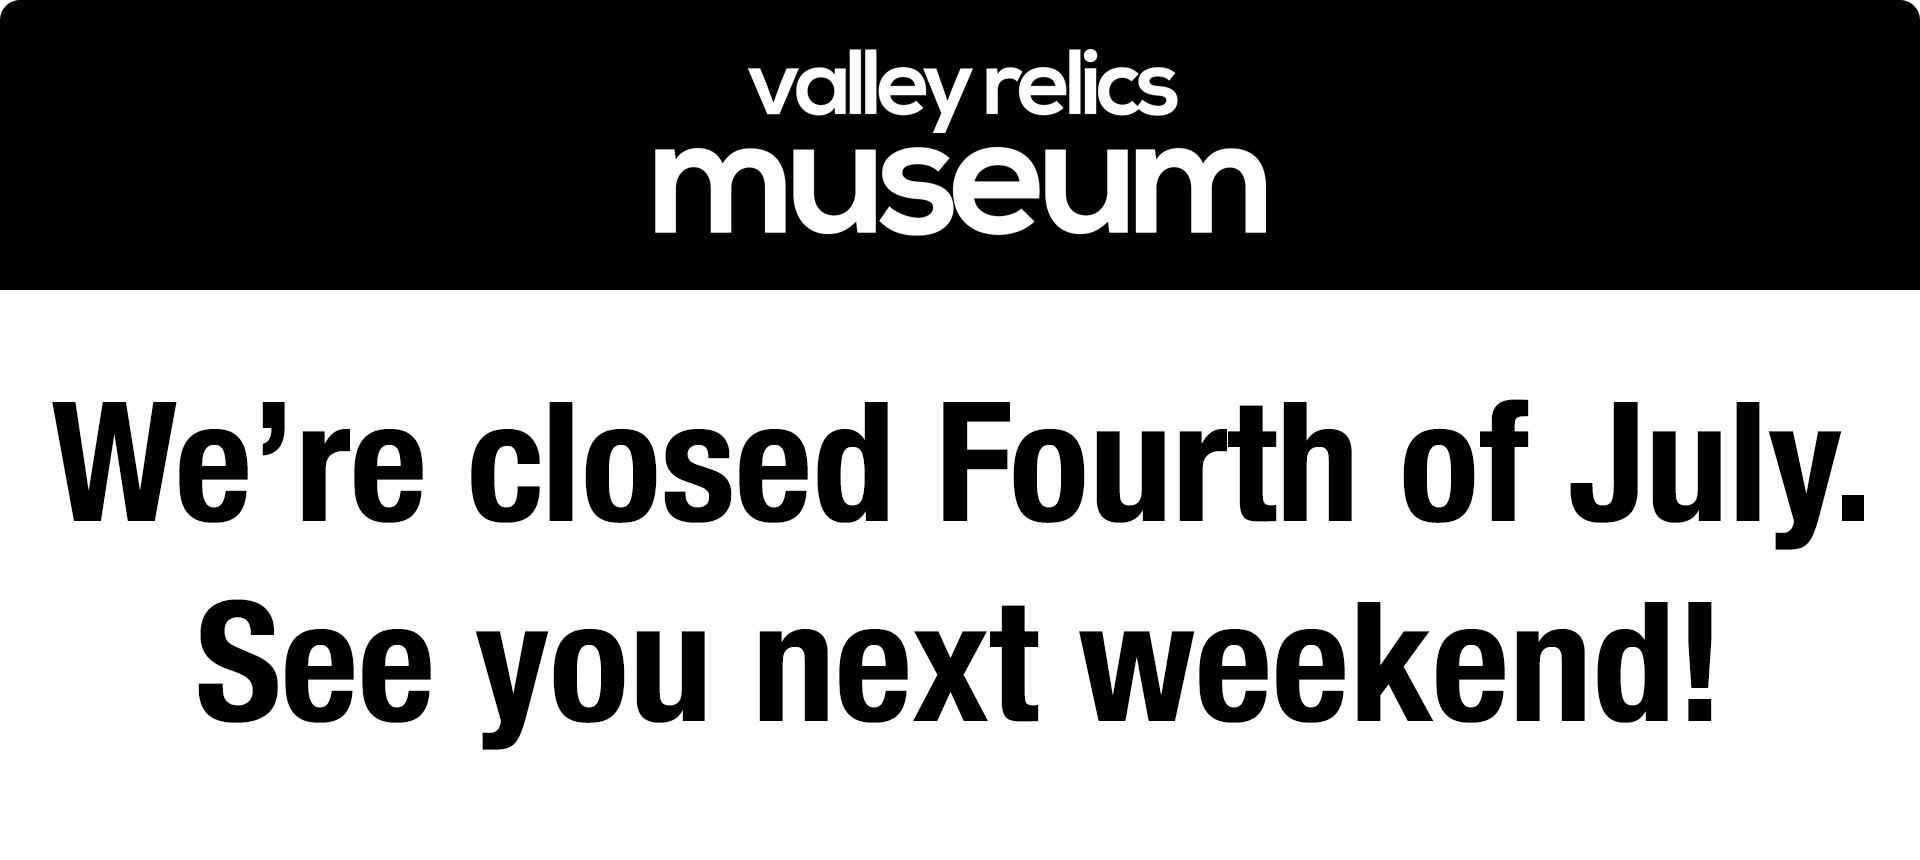 Valley Relics Museum will be closed on 4th of July, 2021